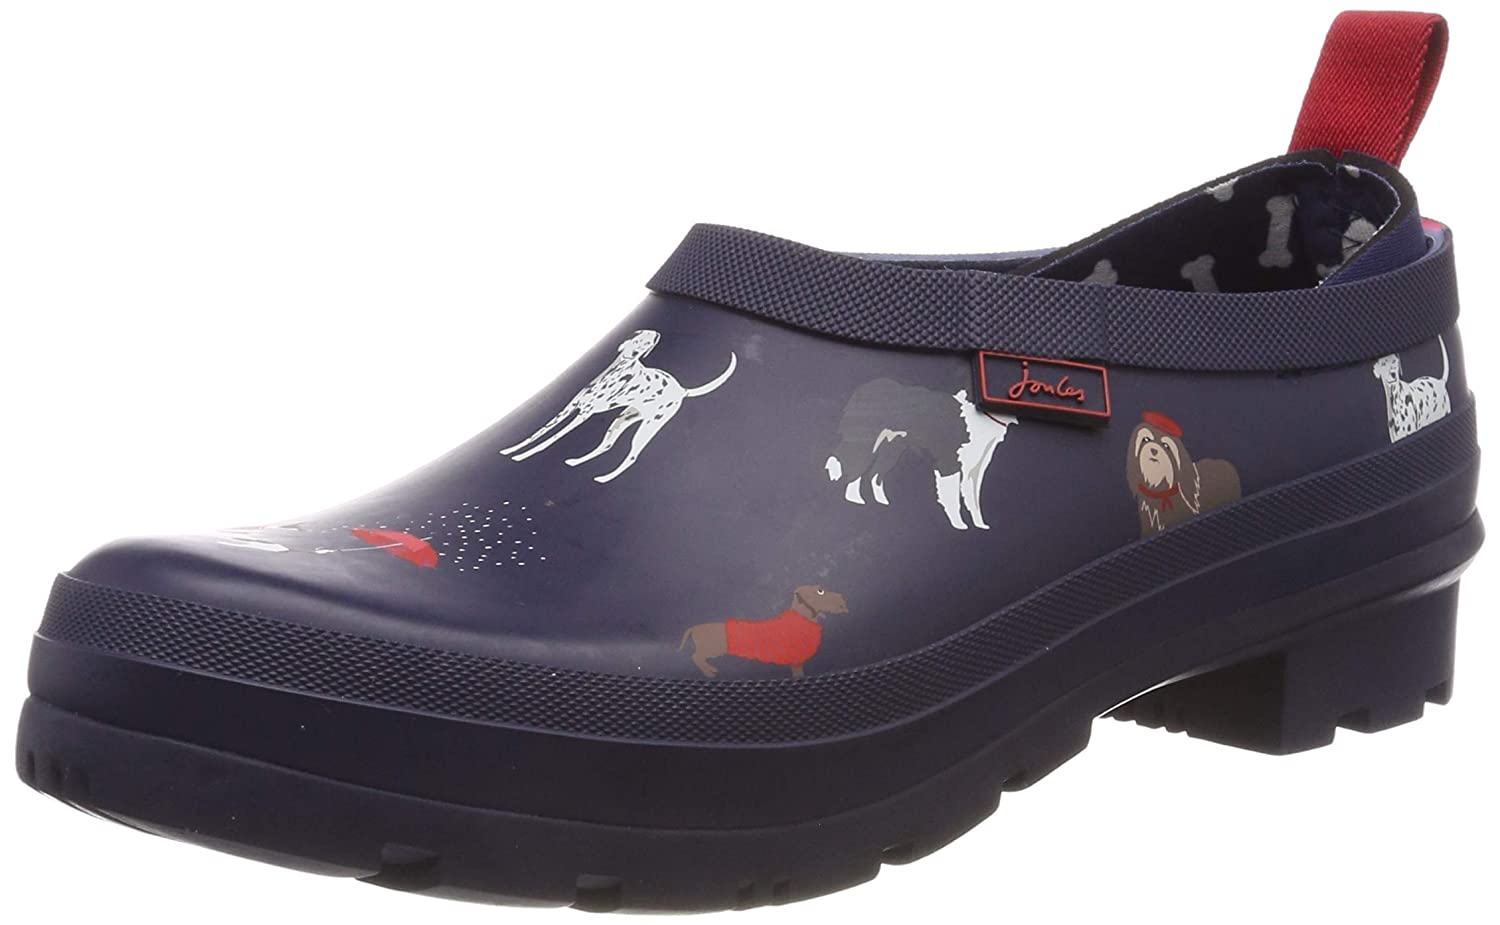 Navy Dogs Joules Women's Pop On Welly Clogs